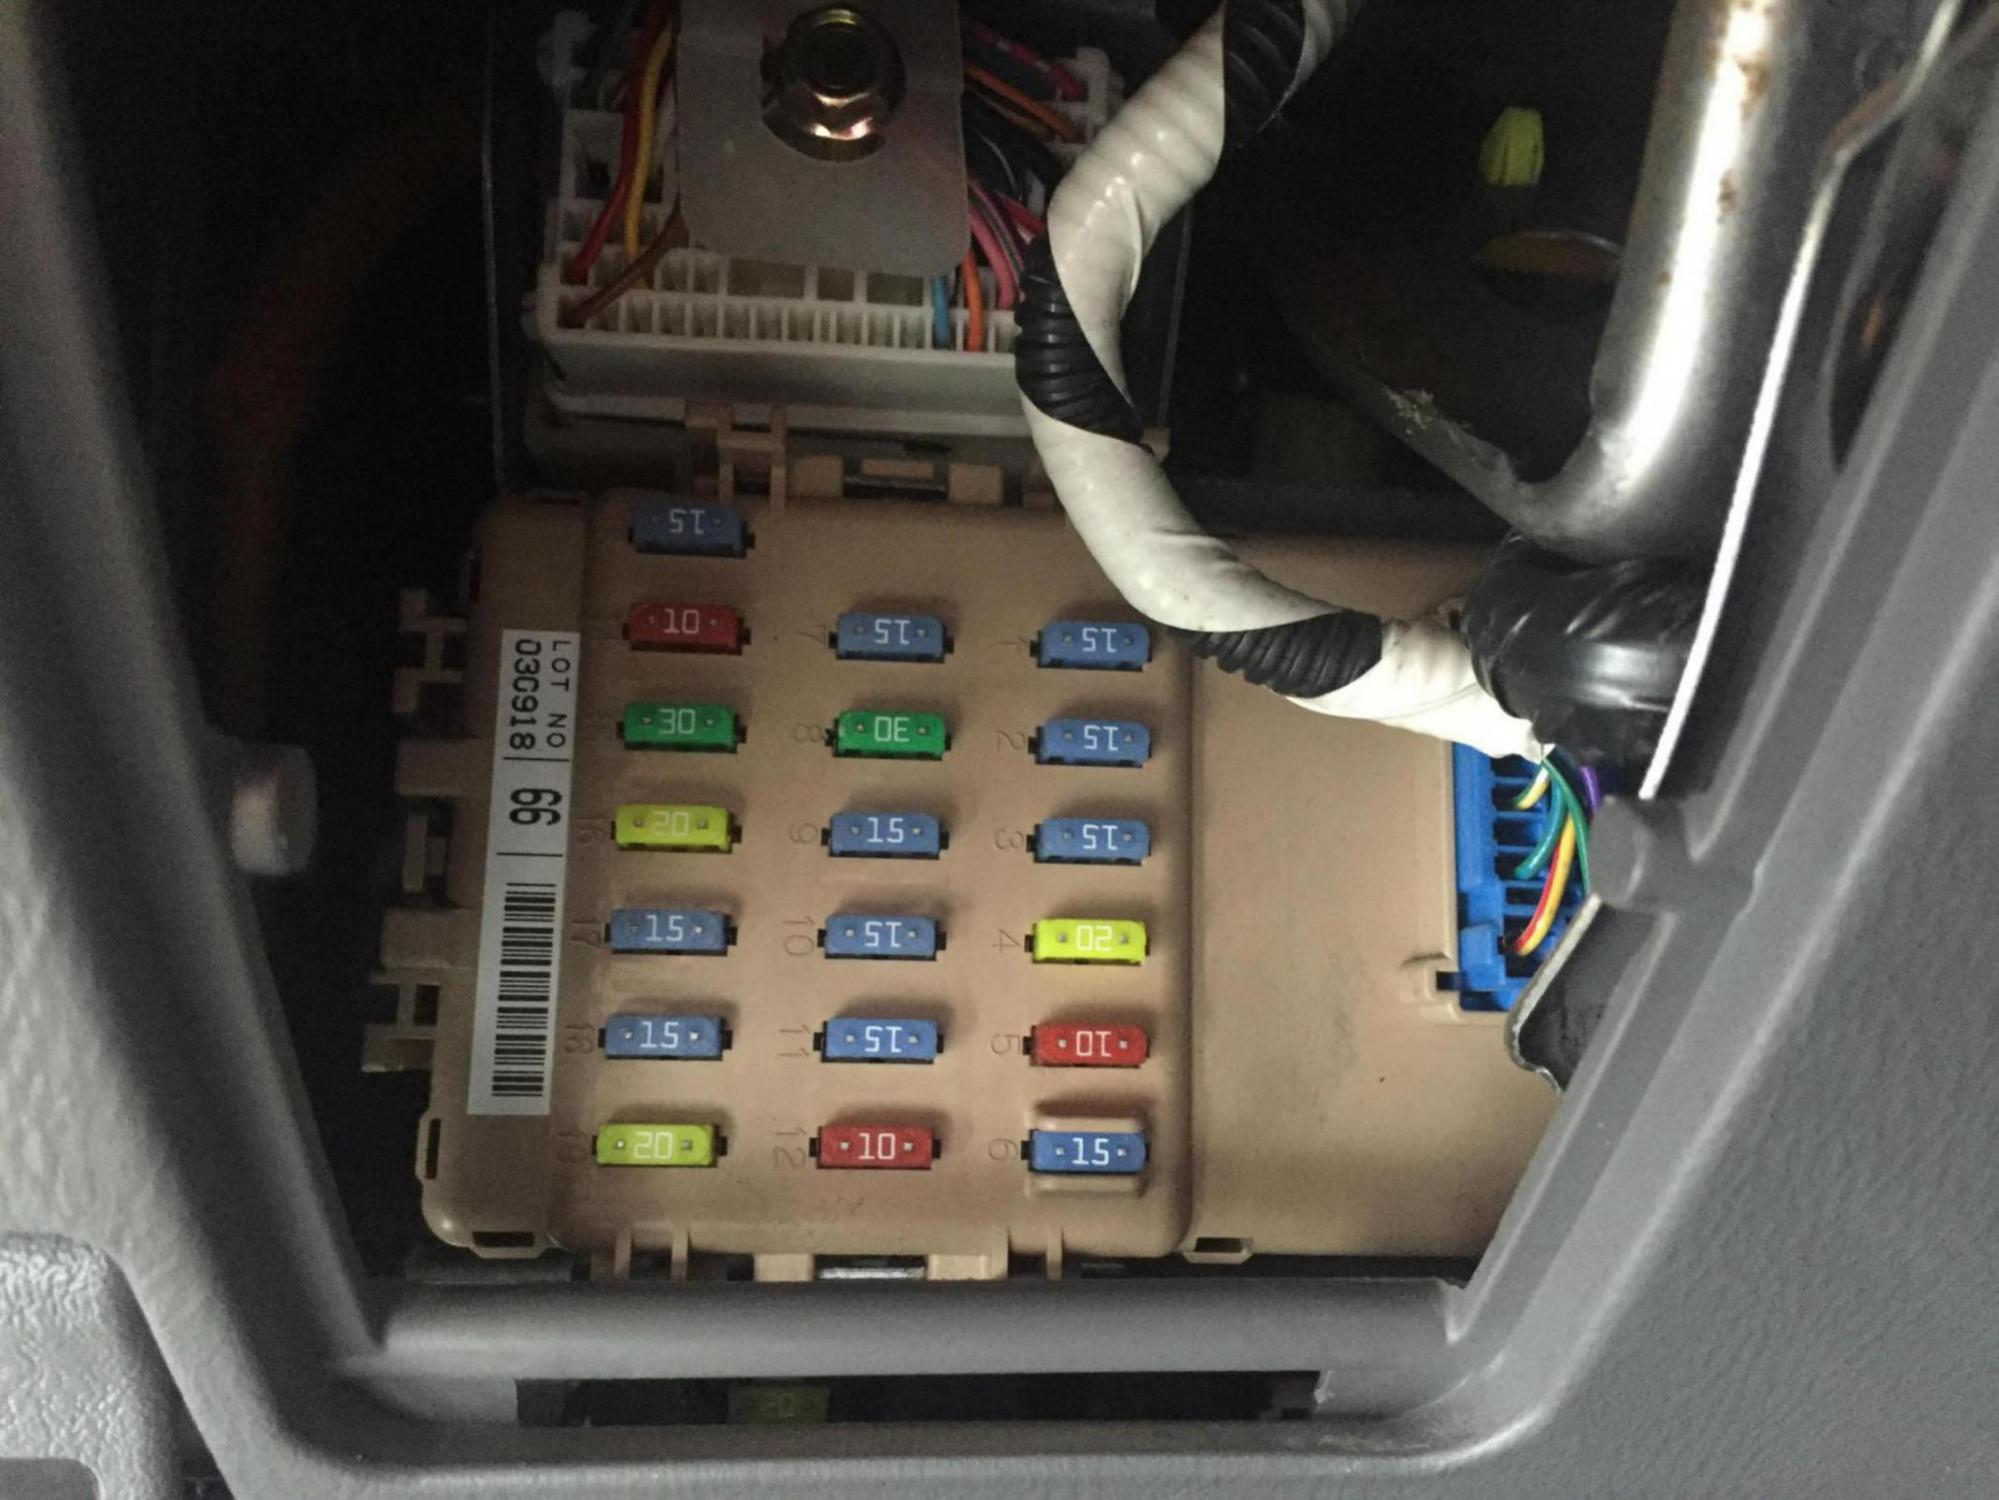 hight resolution of subaru baja fuse box location wiring diagram usedwrg 1907 subaru baja fuse box location subaru